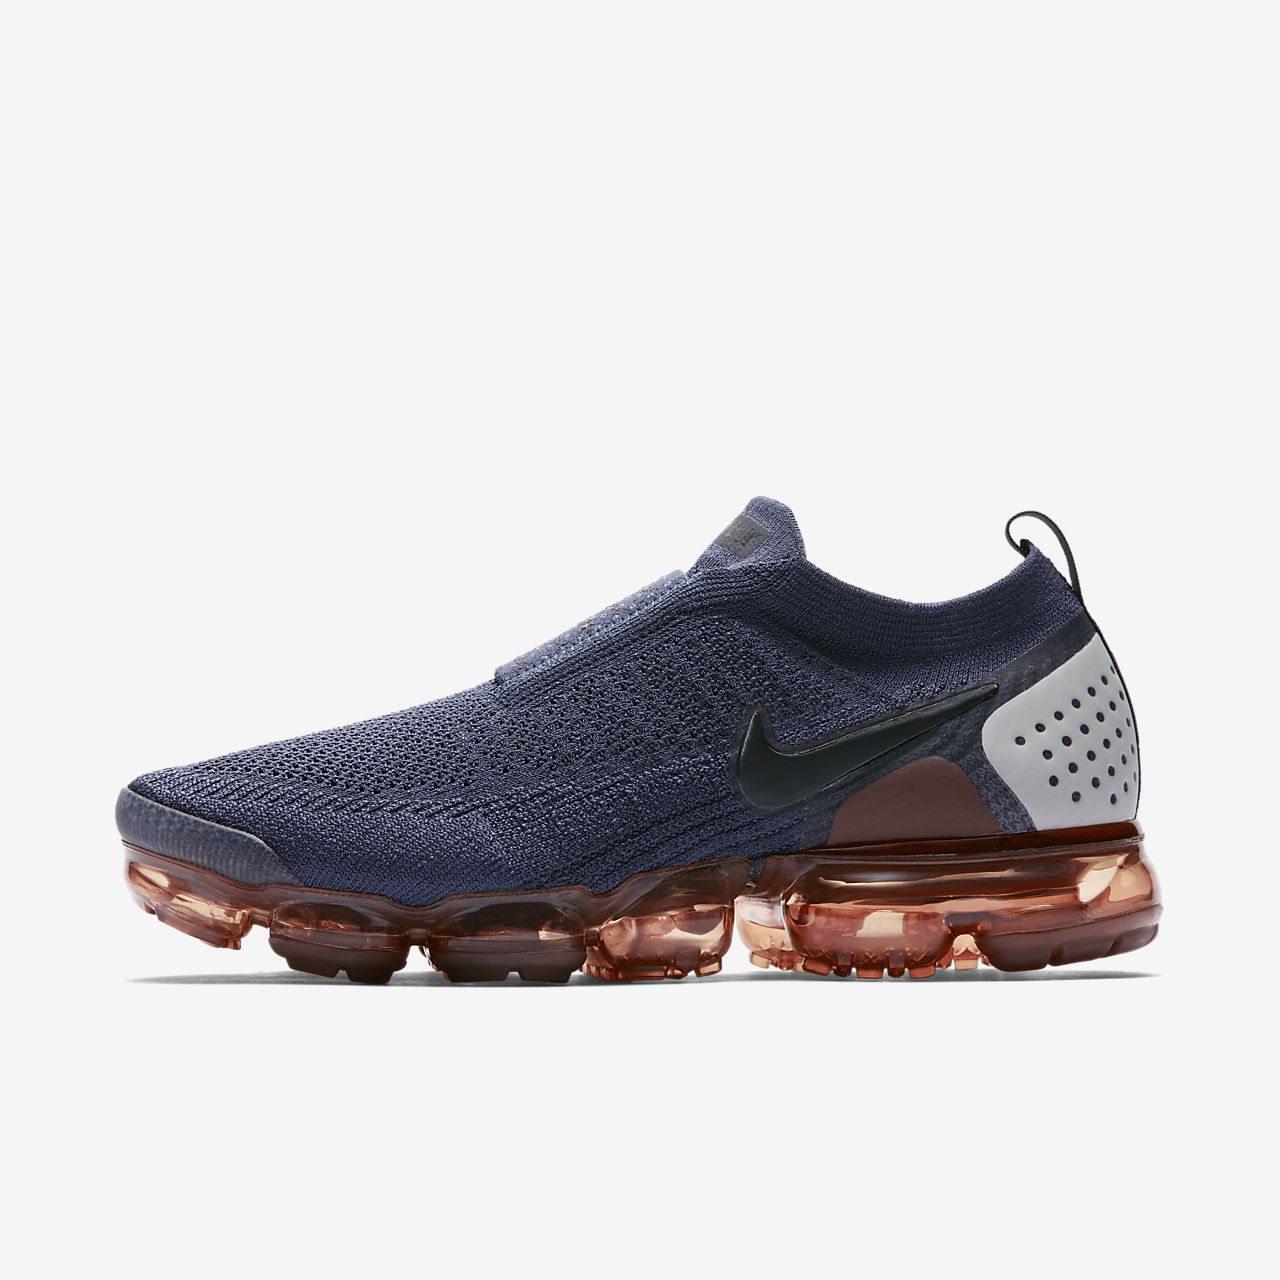 39293013ea8a Nike Air VaporMax Flyknit Moc 2 Shoe. Nike.com AT